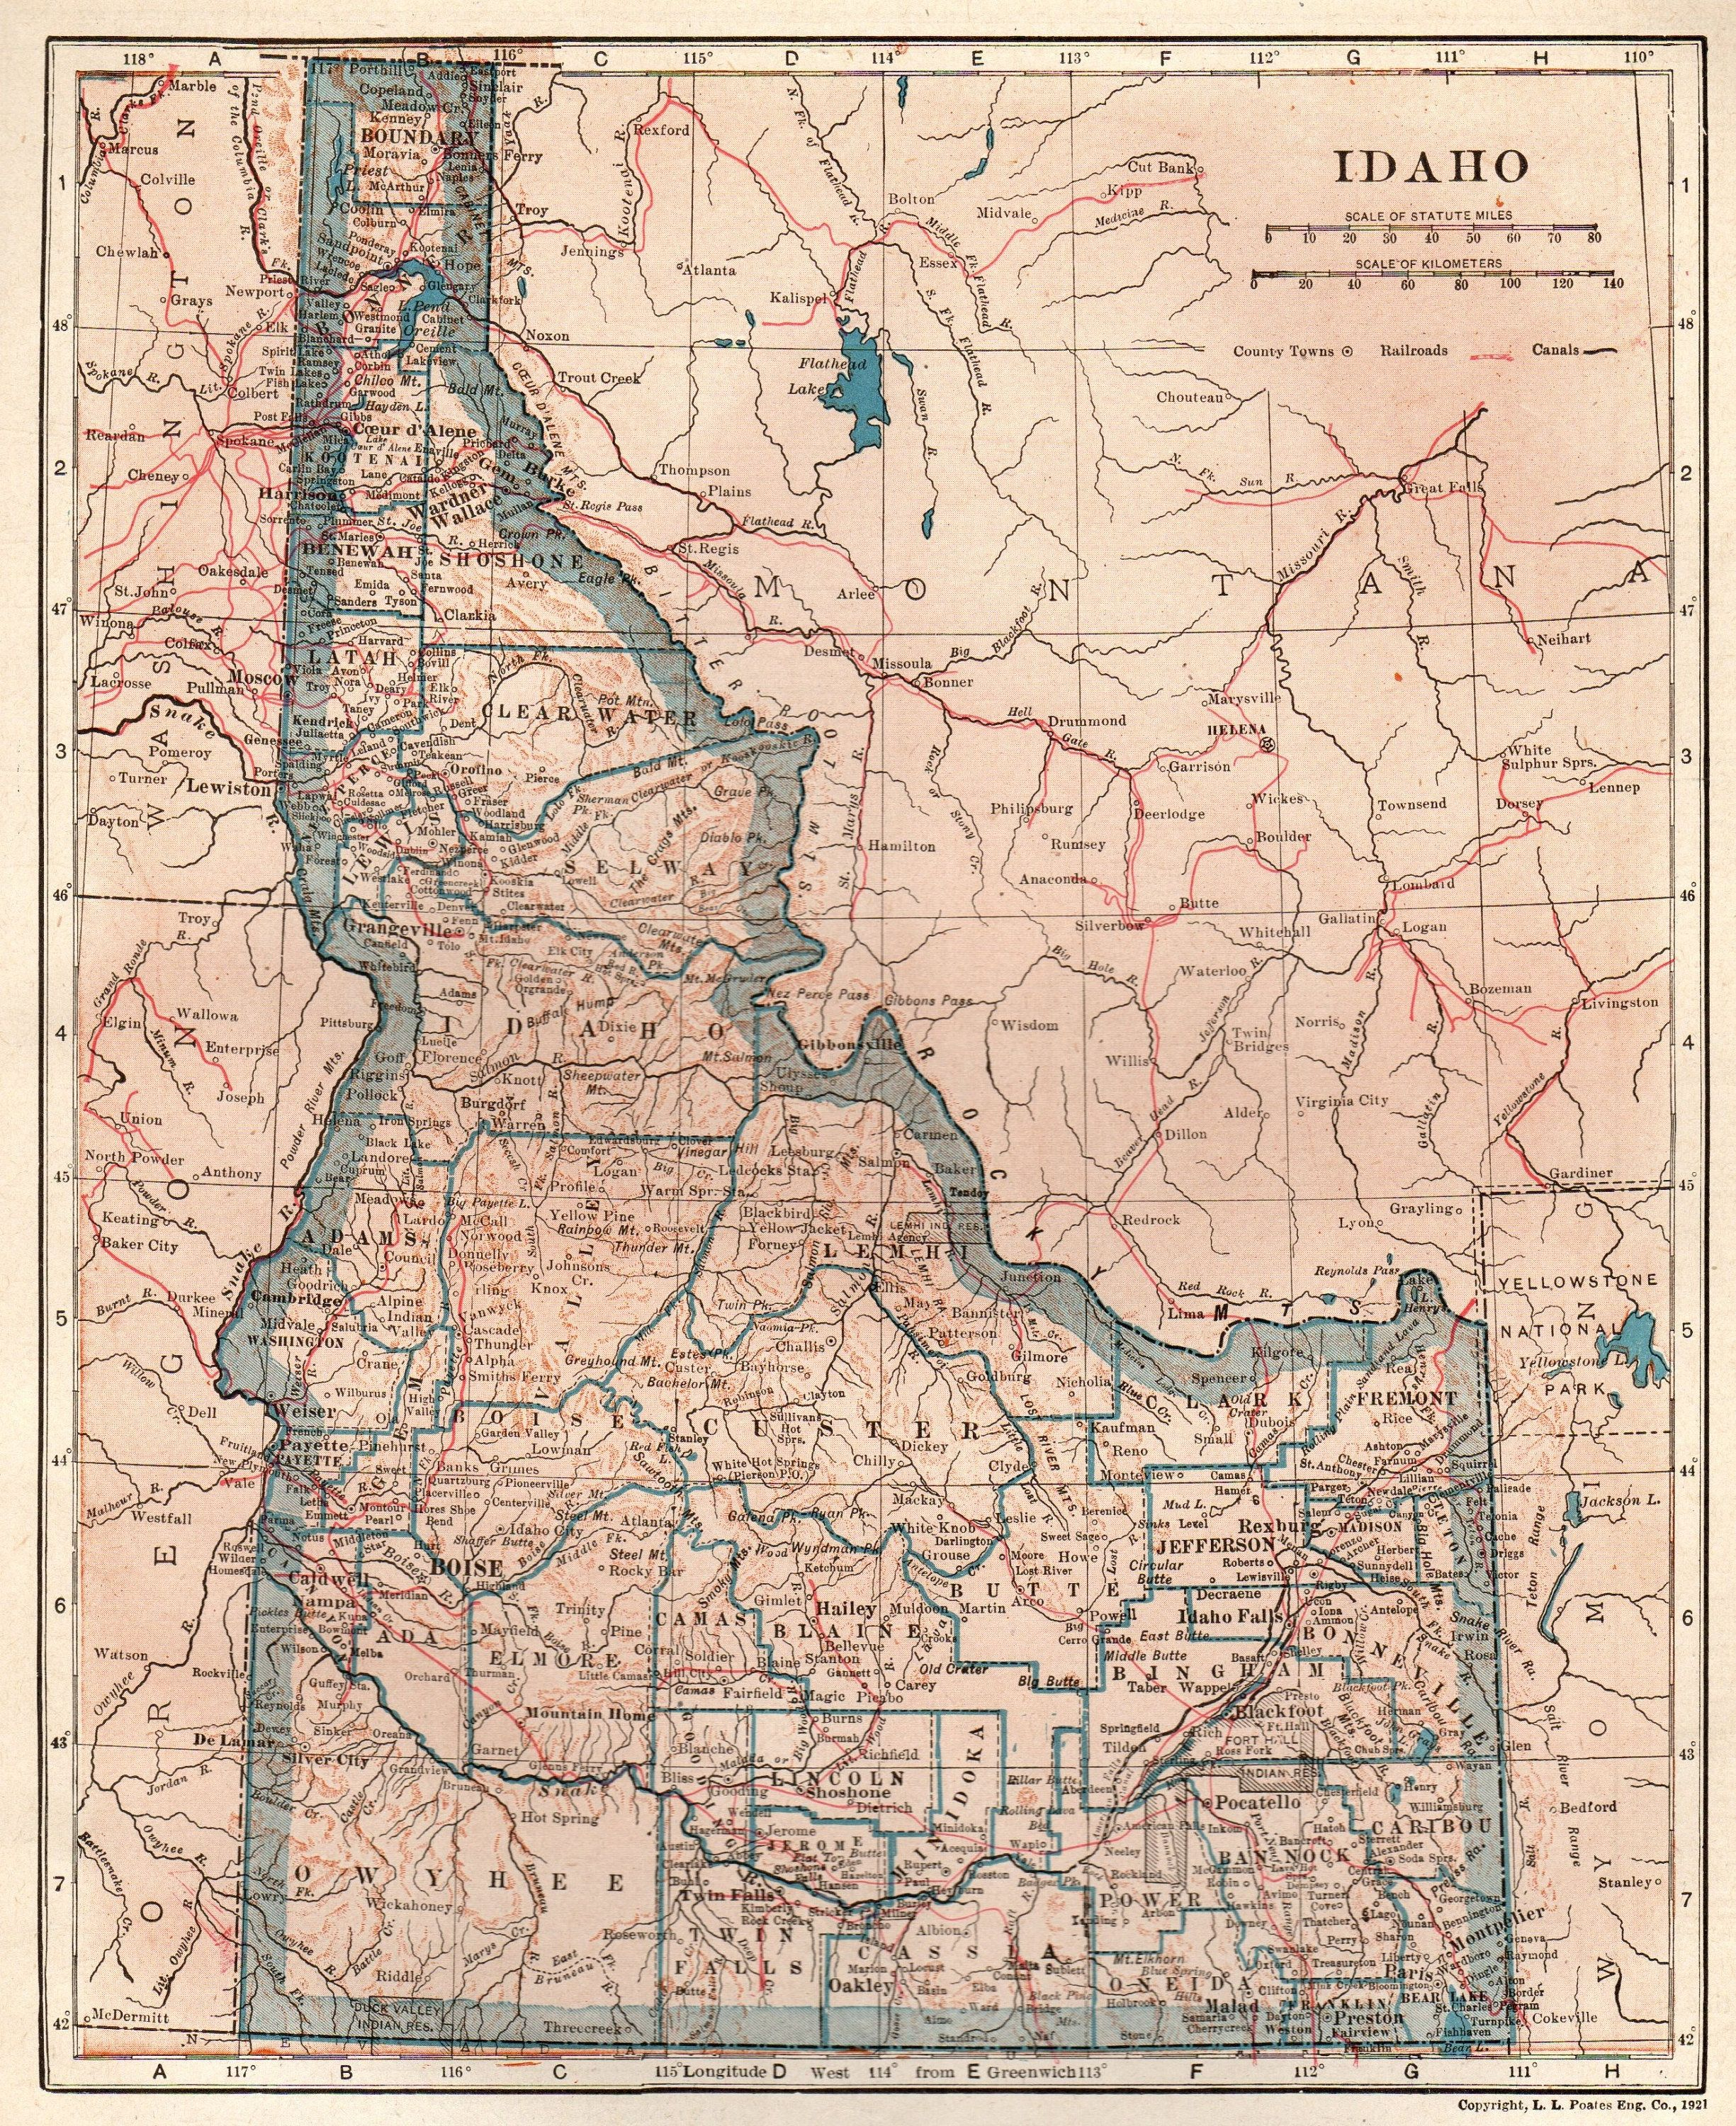 1929 Antique Idaho Map Of Idaho State Map Gallery Wall Art Home Library Decor Gift For Traveler Map Collector Birthday Wedding 8851 Map Poster Prints State Map